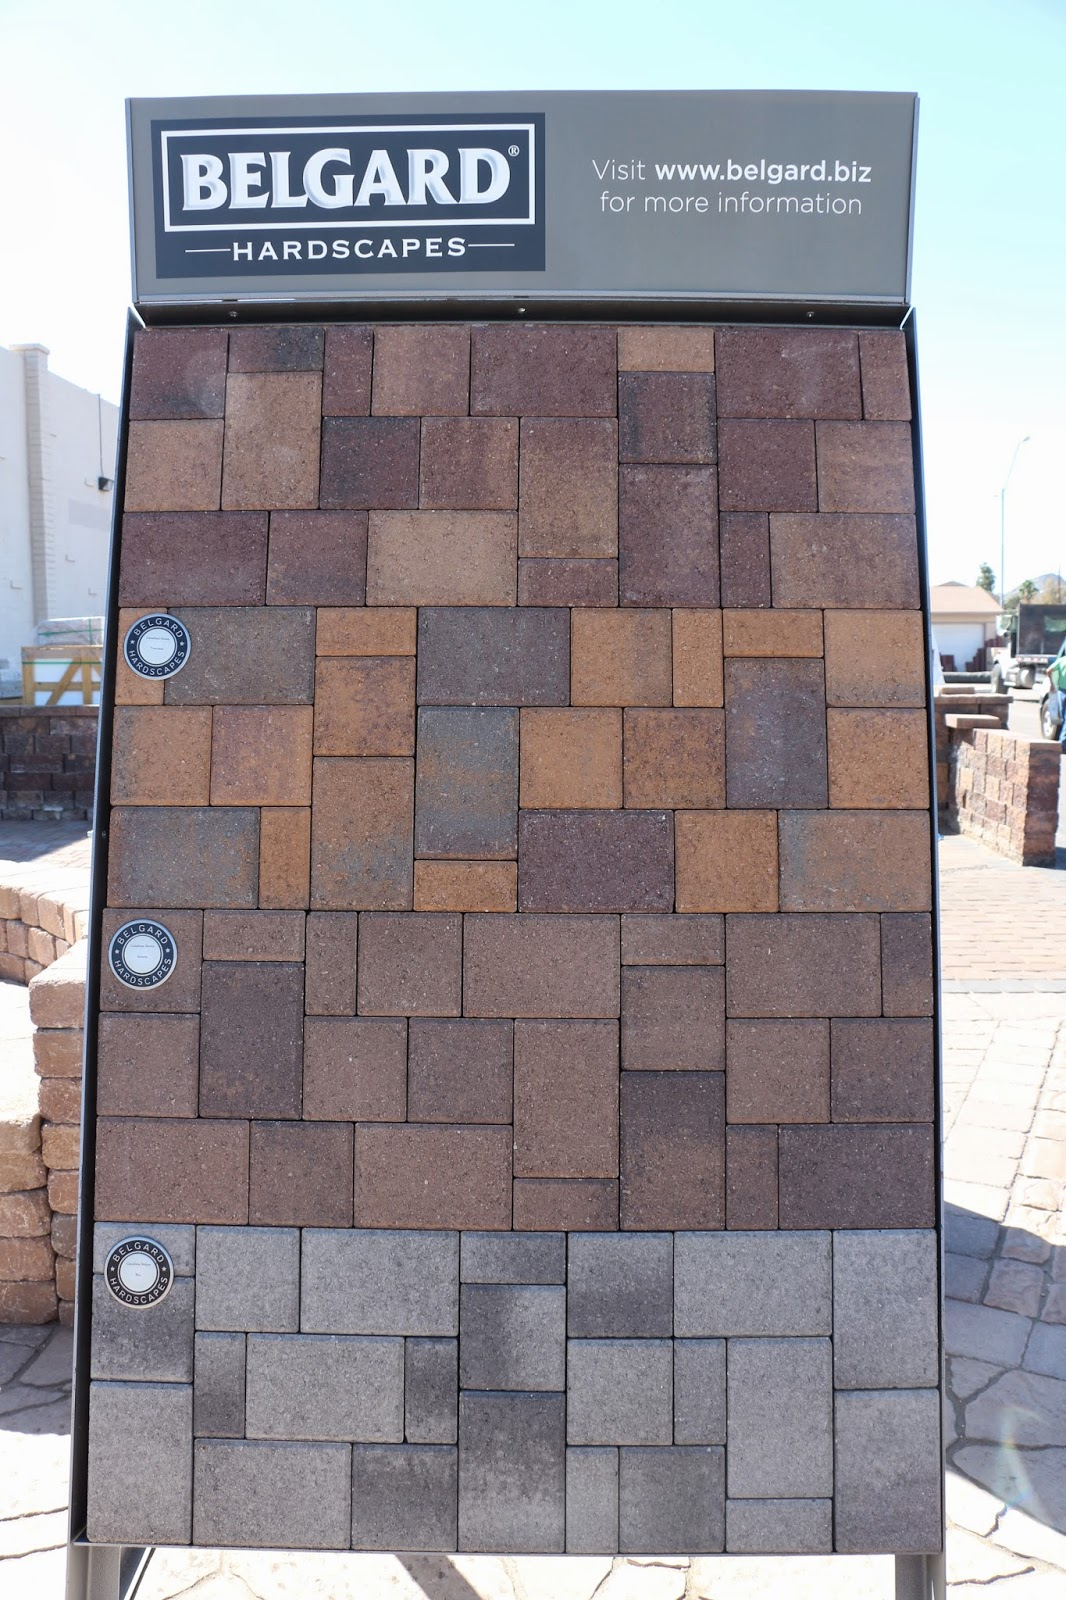 belgard paver colors